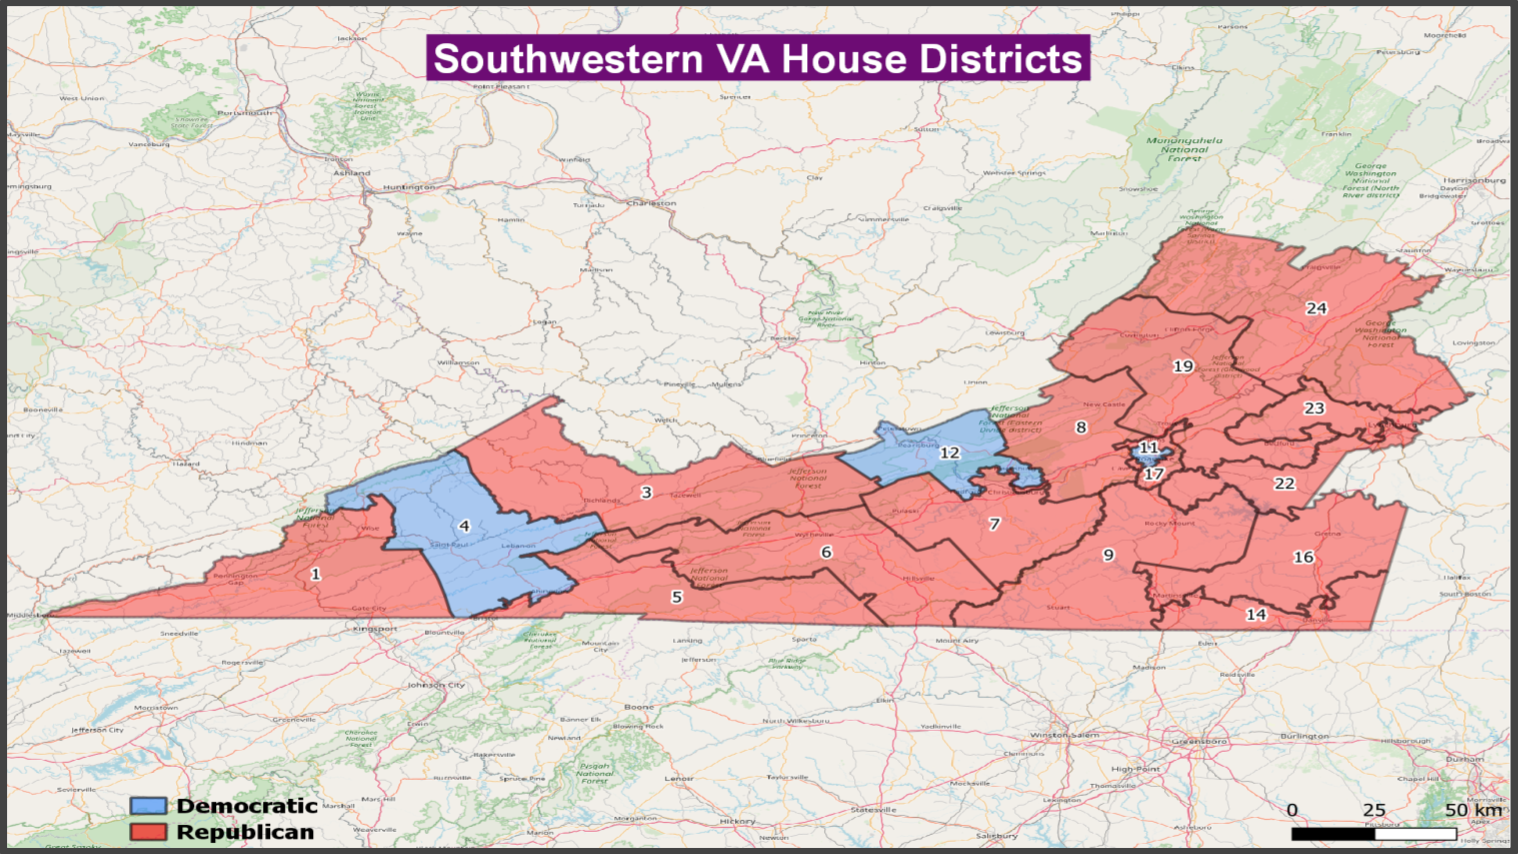 VA House - Southwestern VA Districts